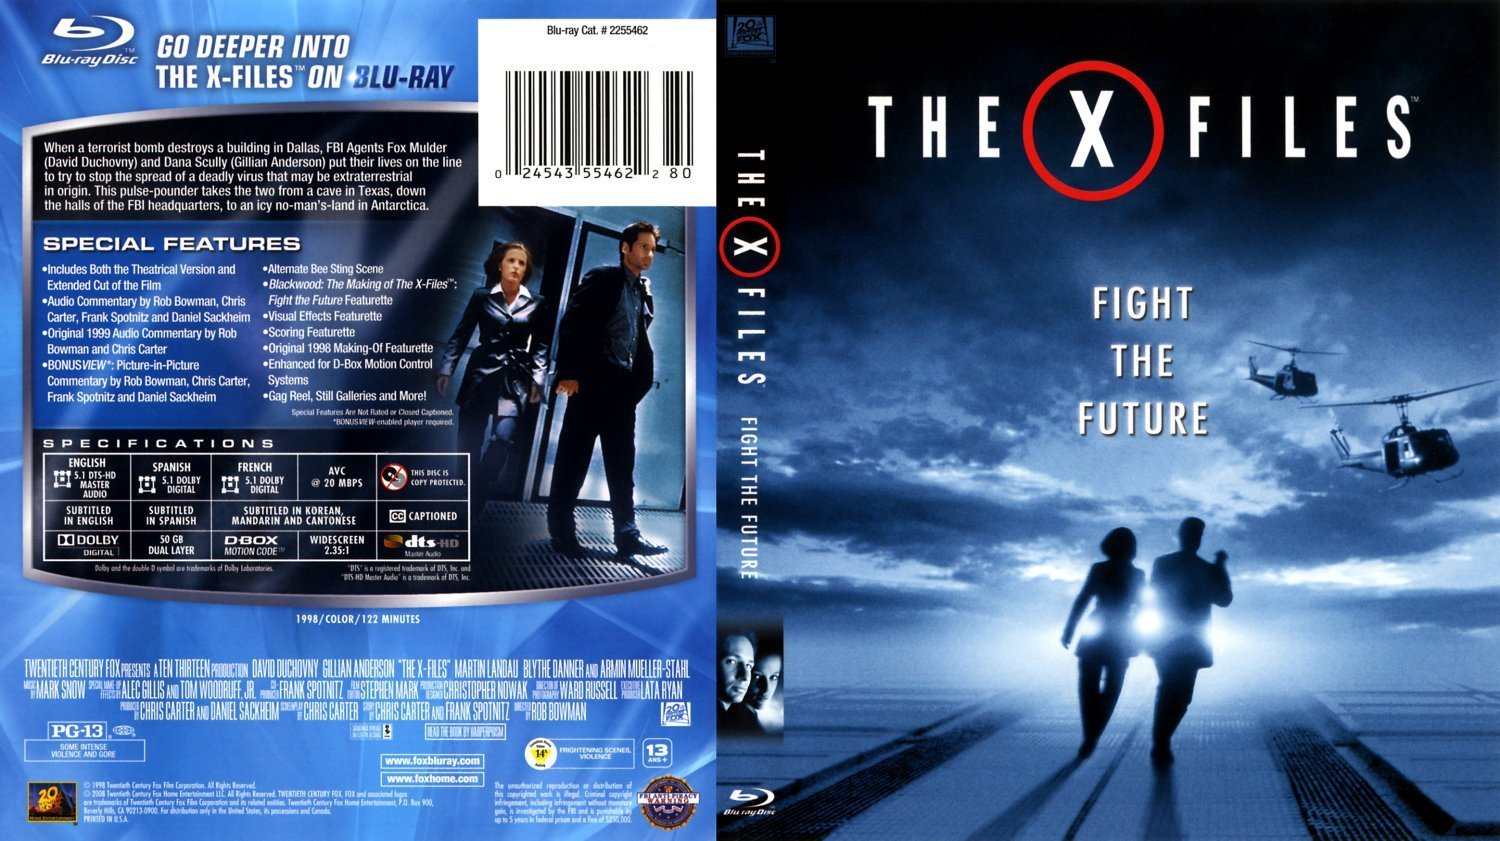 X Files Fight The Future Bluray Bostont Dvd Covers And Labels